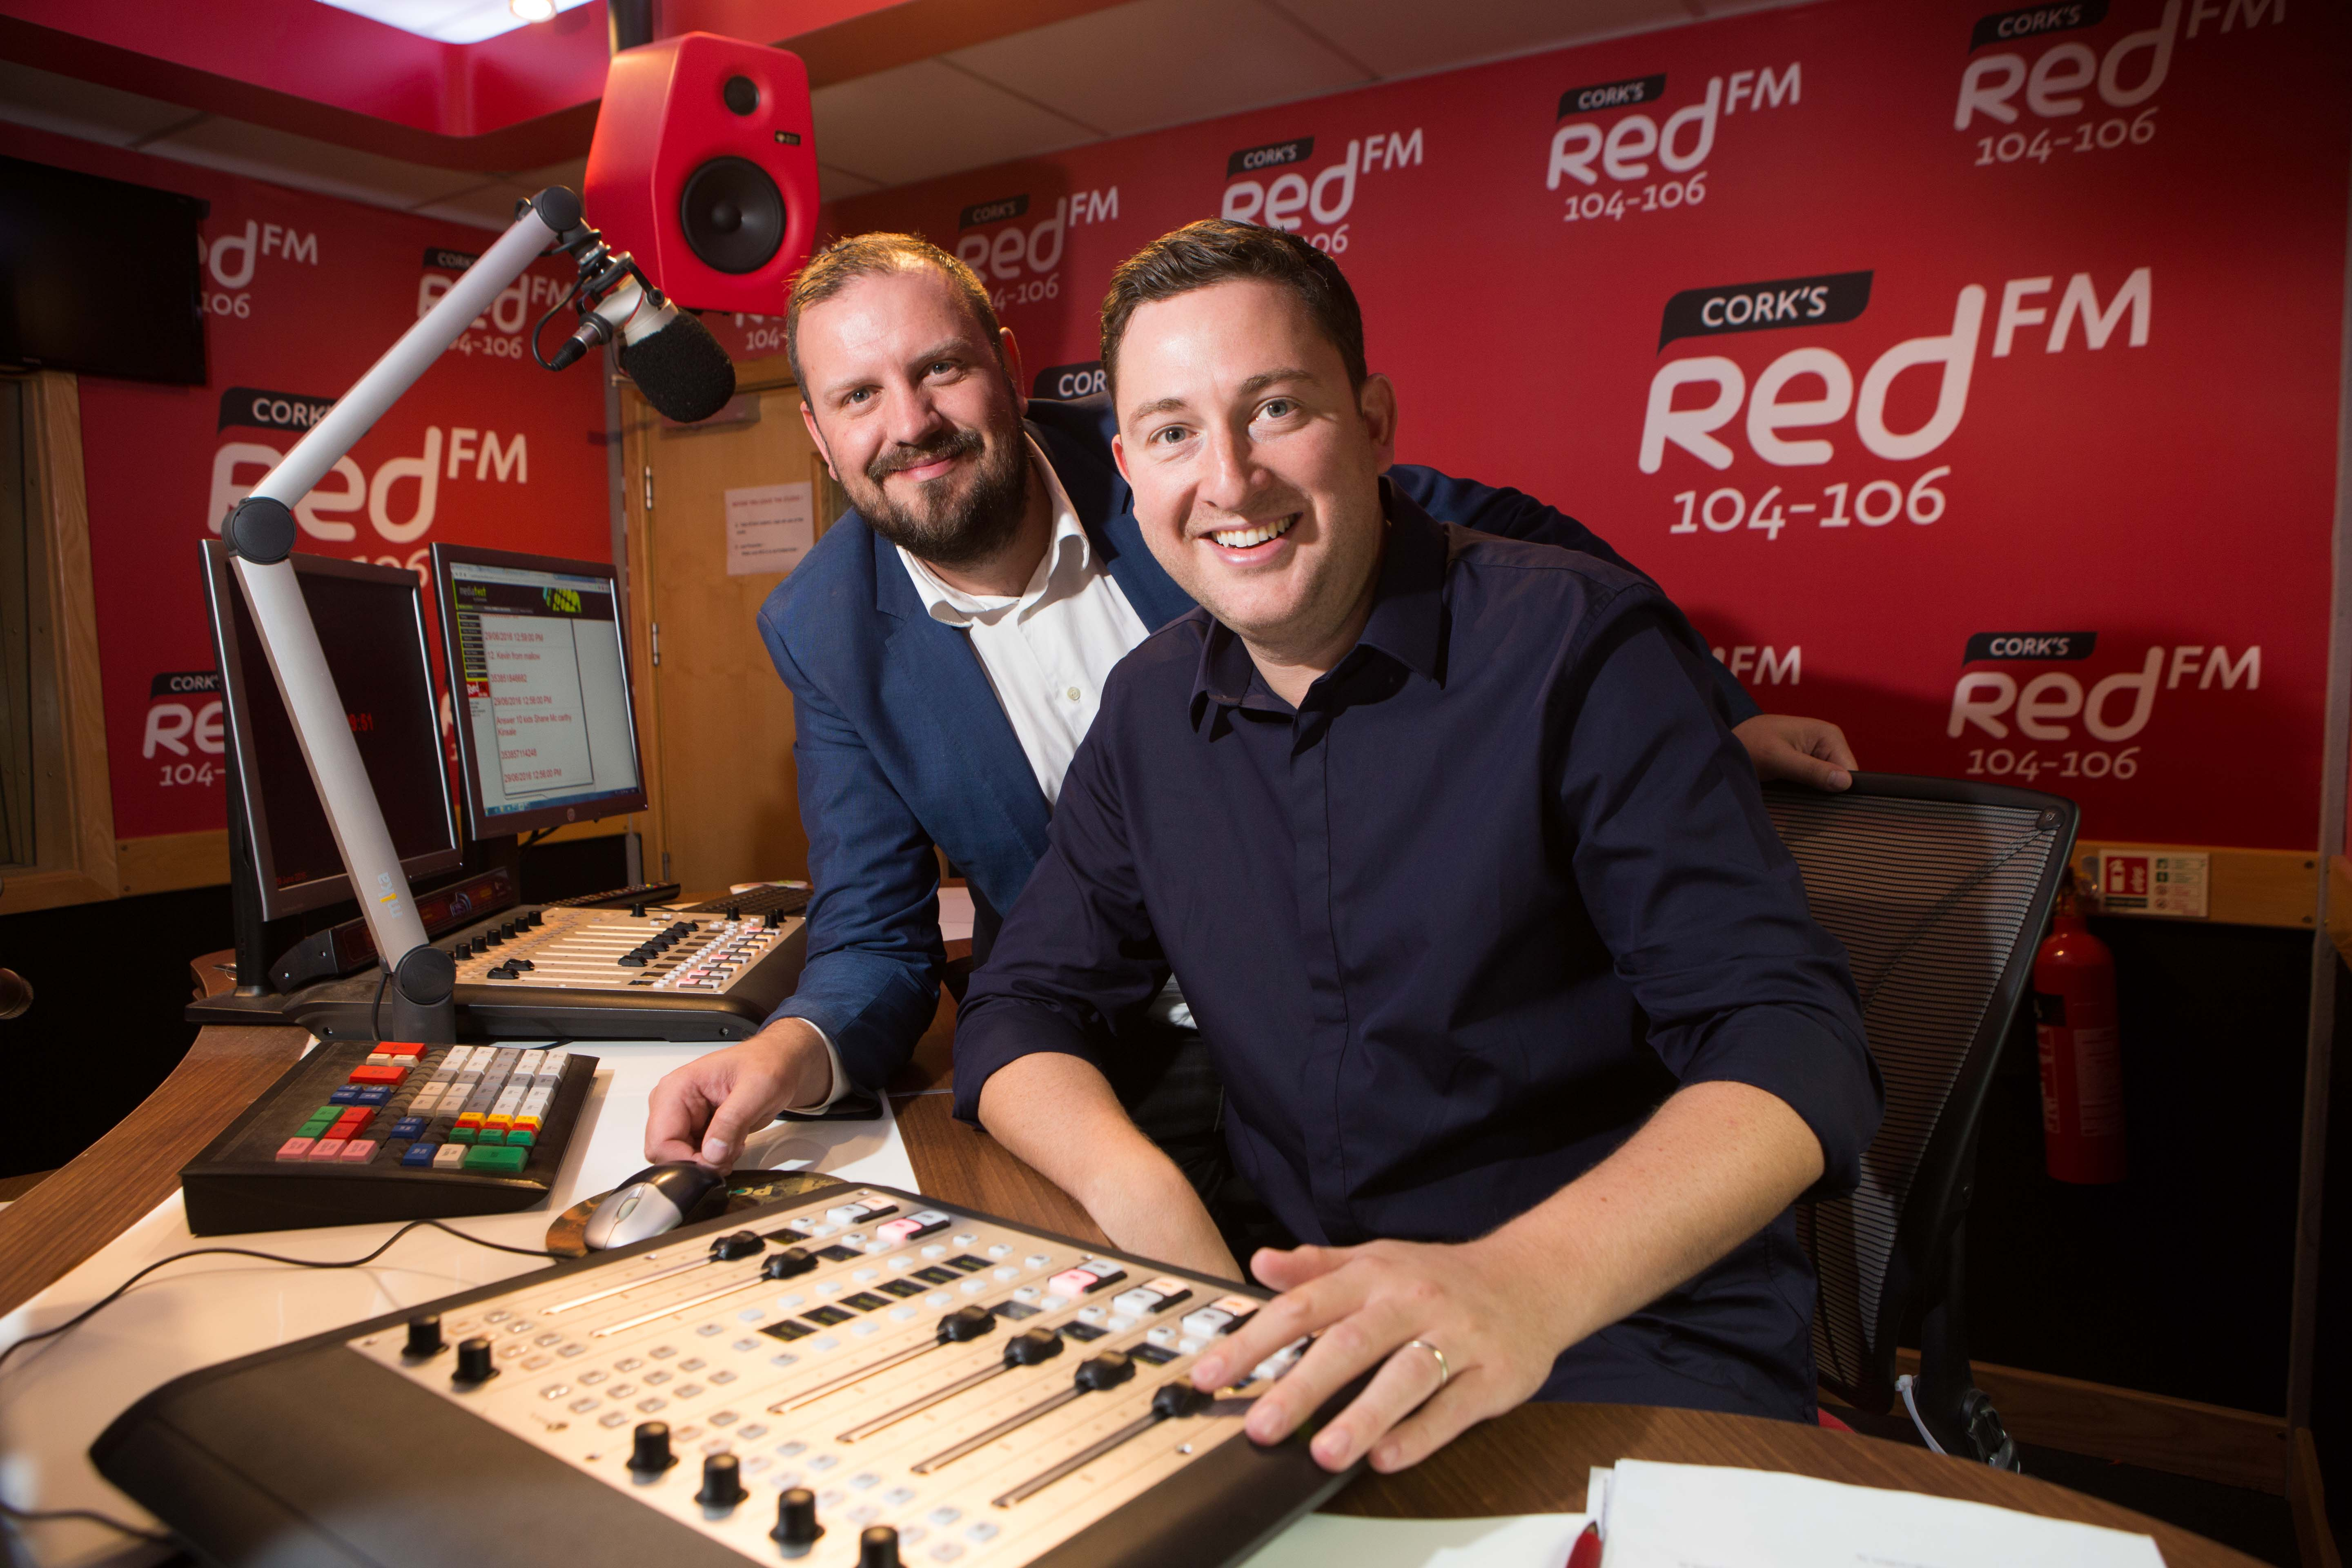 Ray Foley travels from Dublin to Cork to broadcast 3 hour Saturday show on RedFM